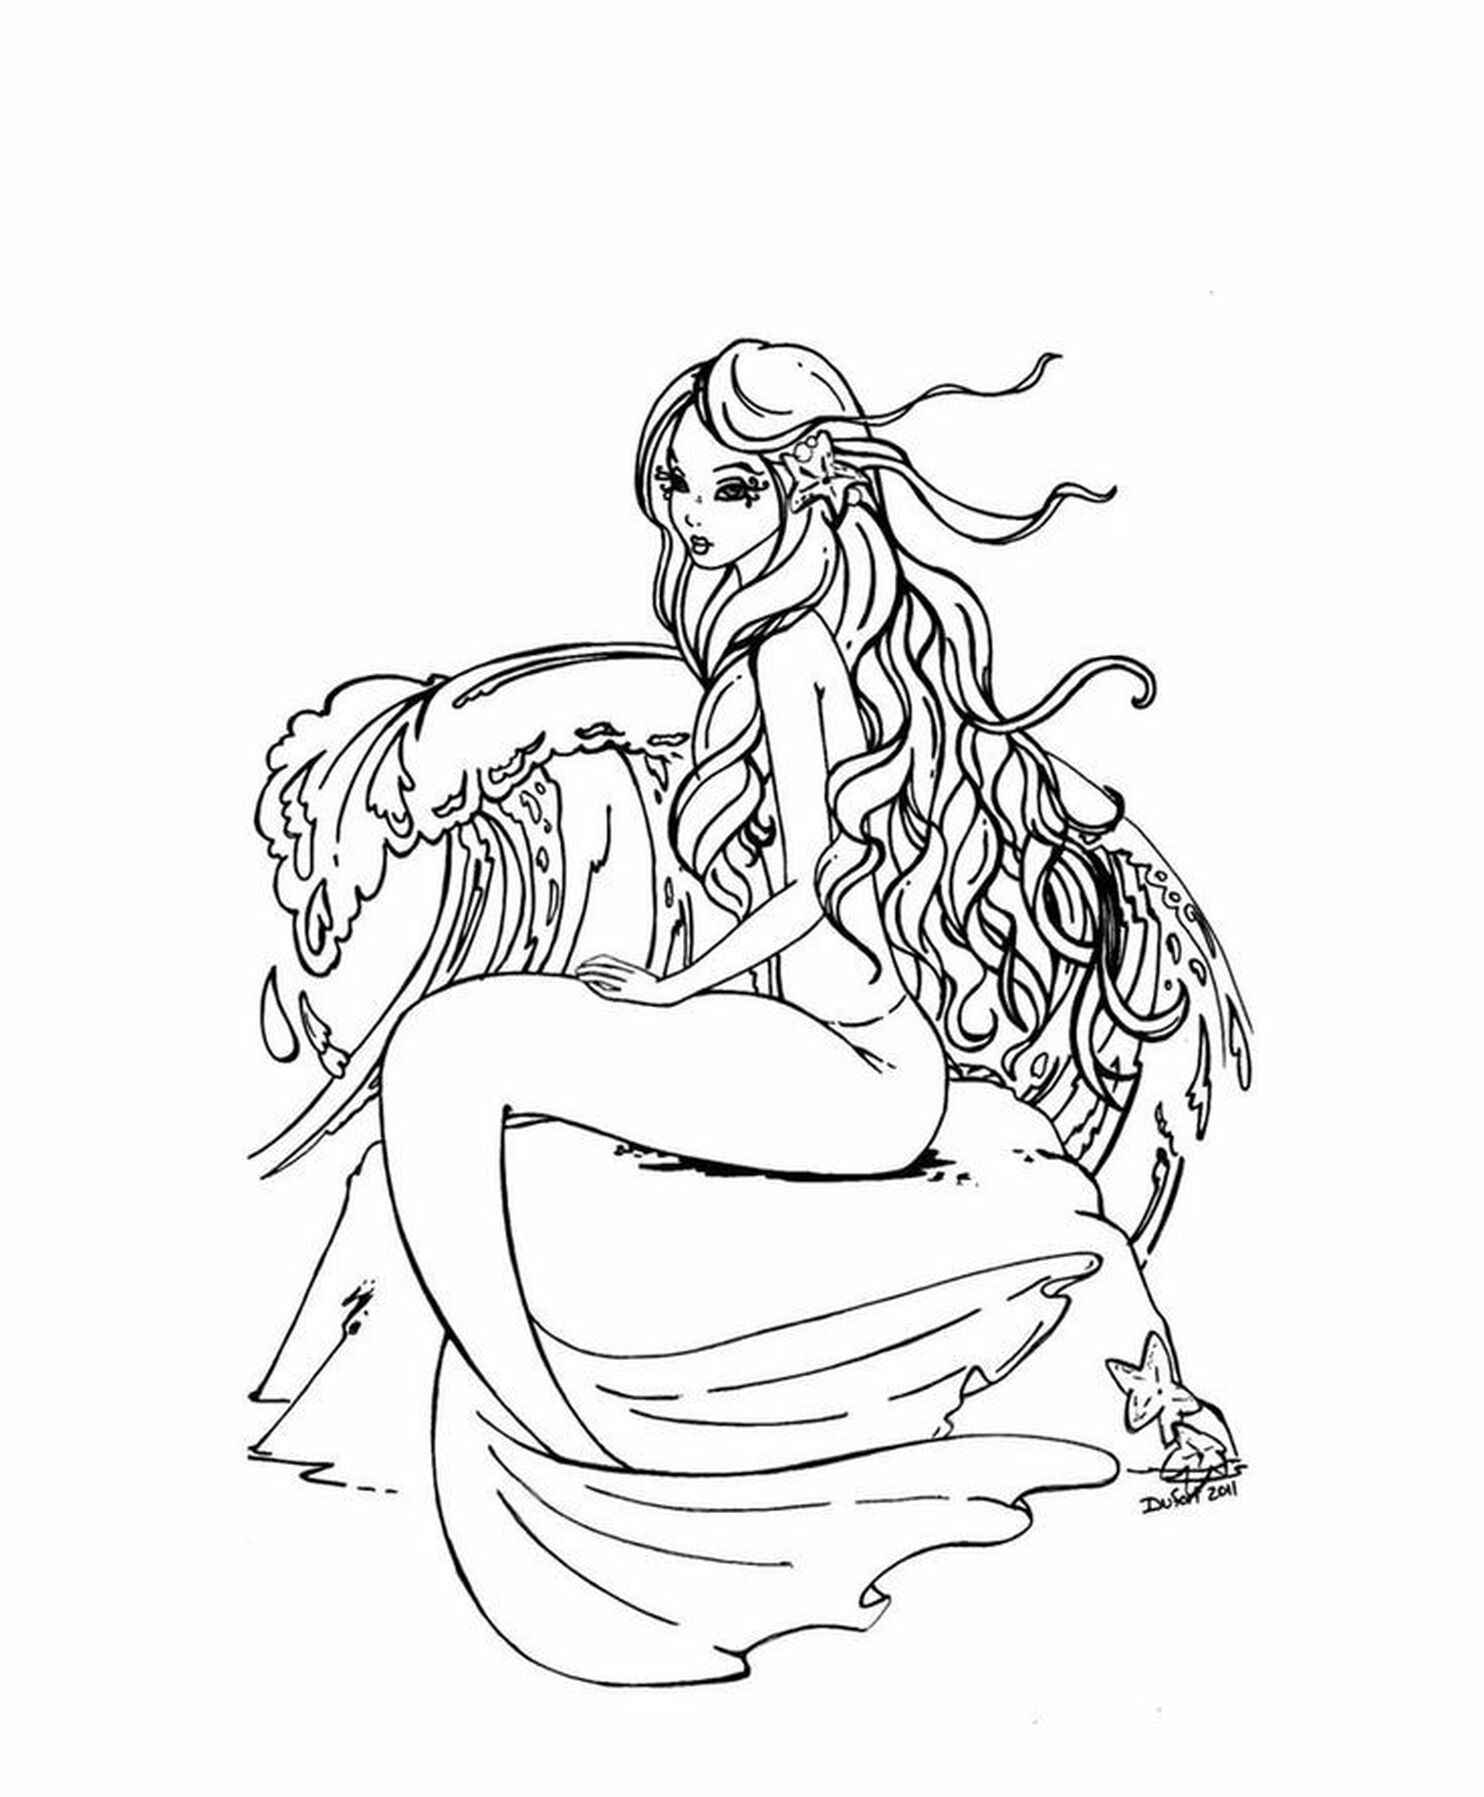 Mermaid Coloring Page For Adults